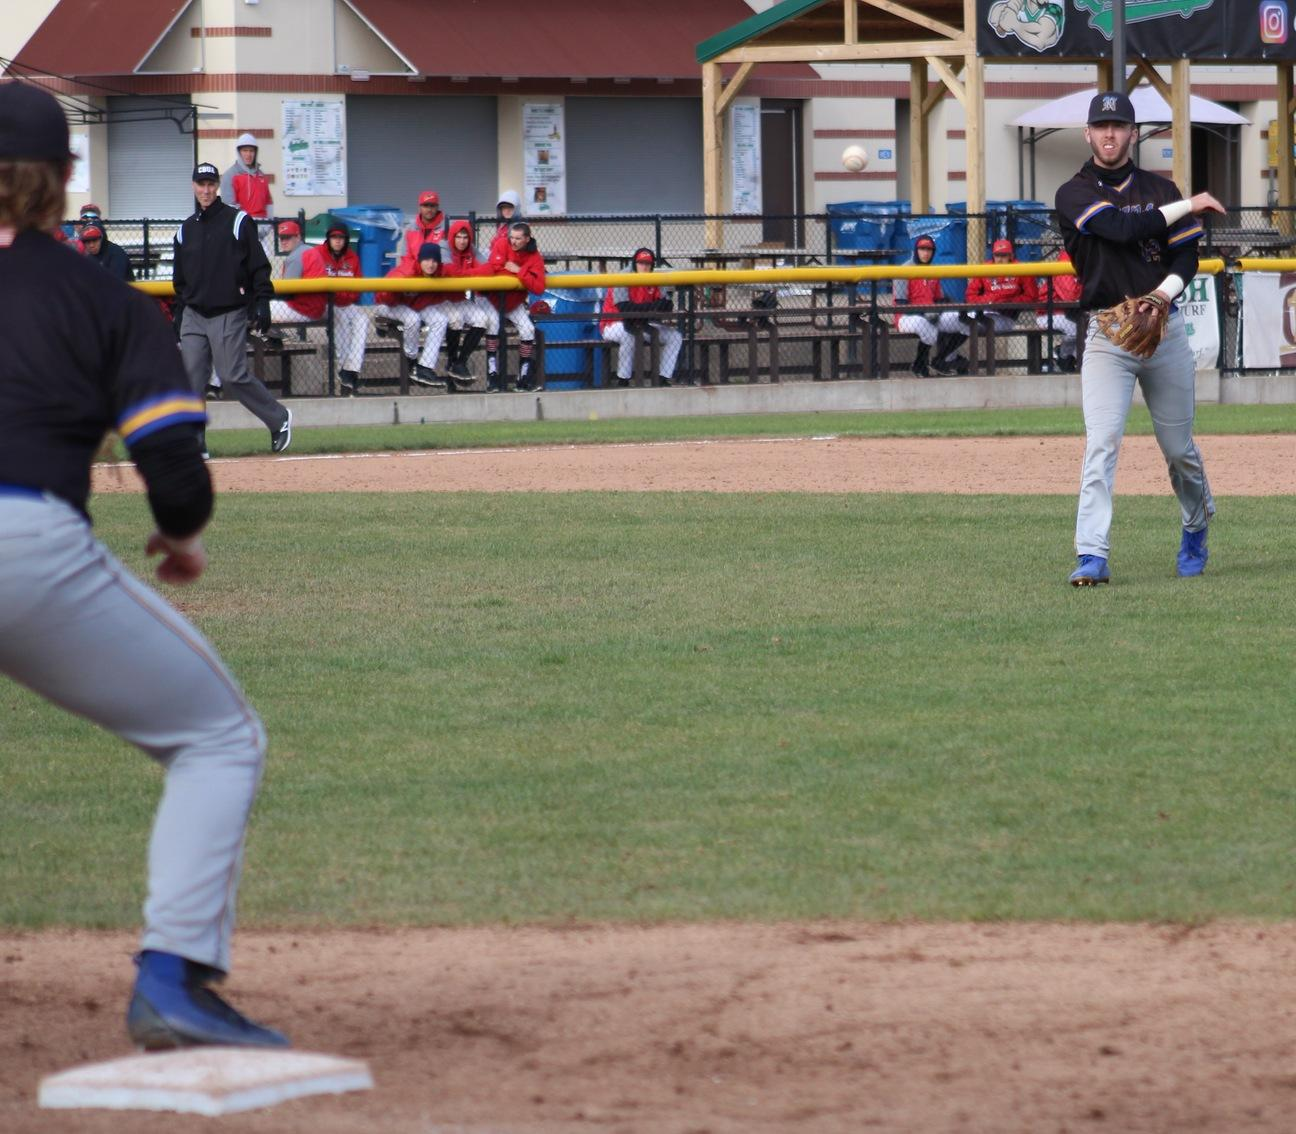 NIACC shortstop Jake Hansen throws to first baseman Jake Hansen for an out in Saturday's game against DMACC.